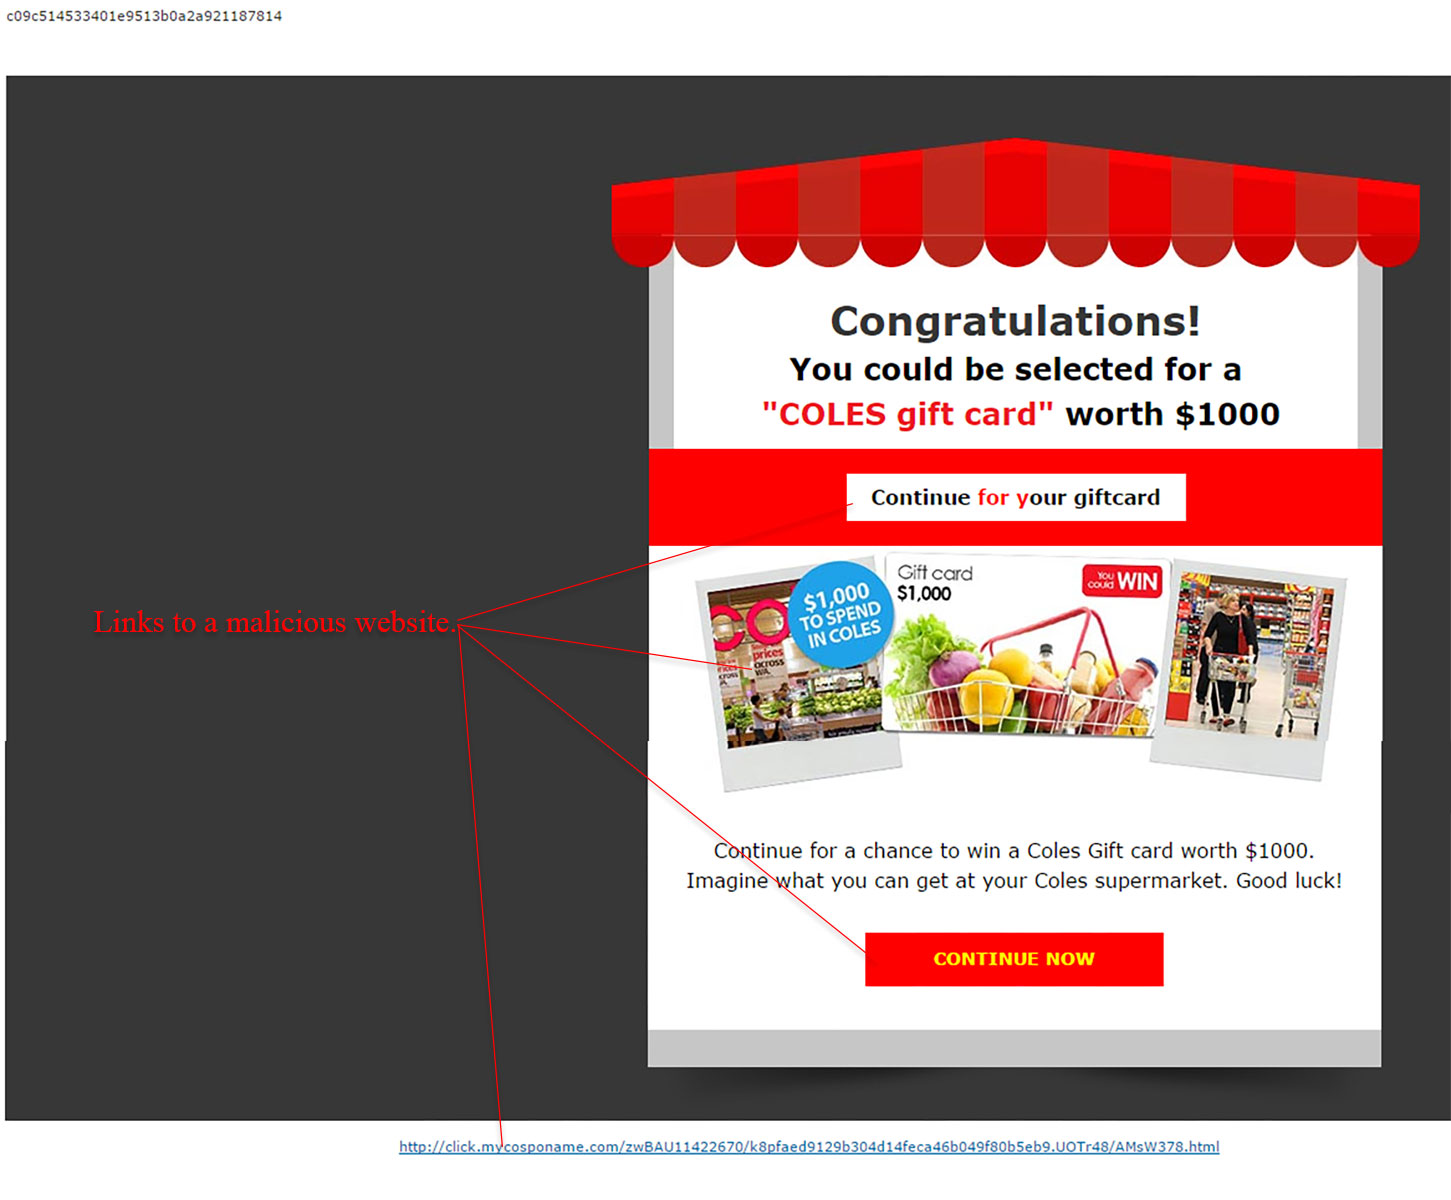 MailShark Your 1000 AUD Coles Gift Card Scam